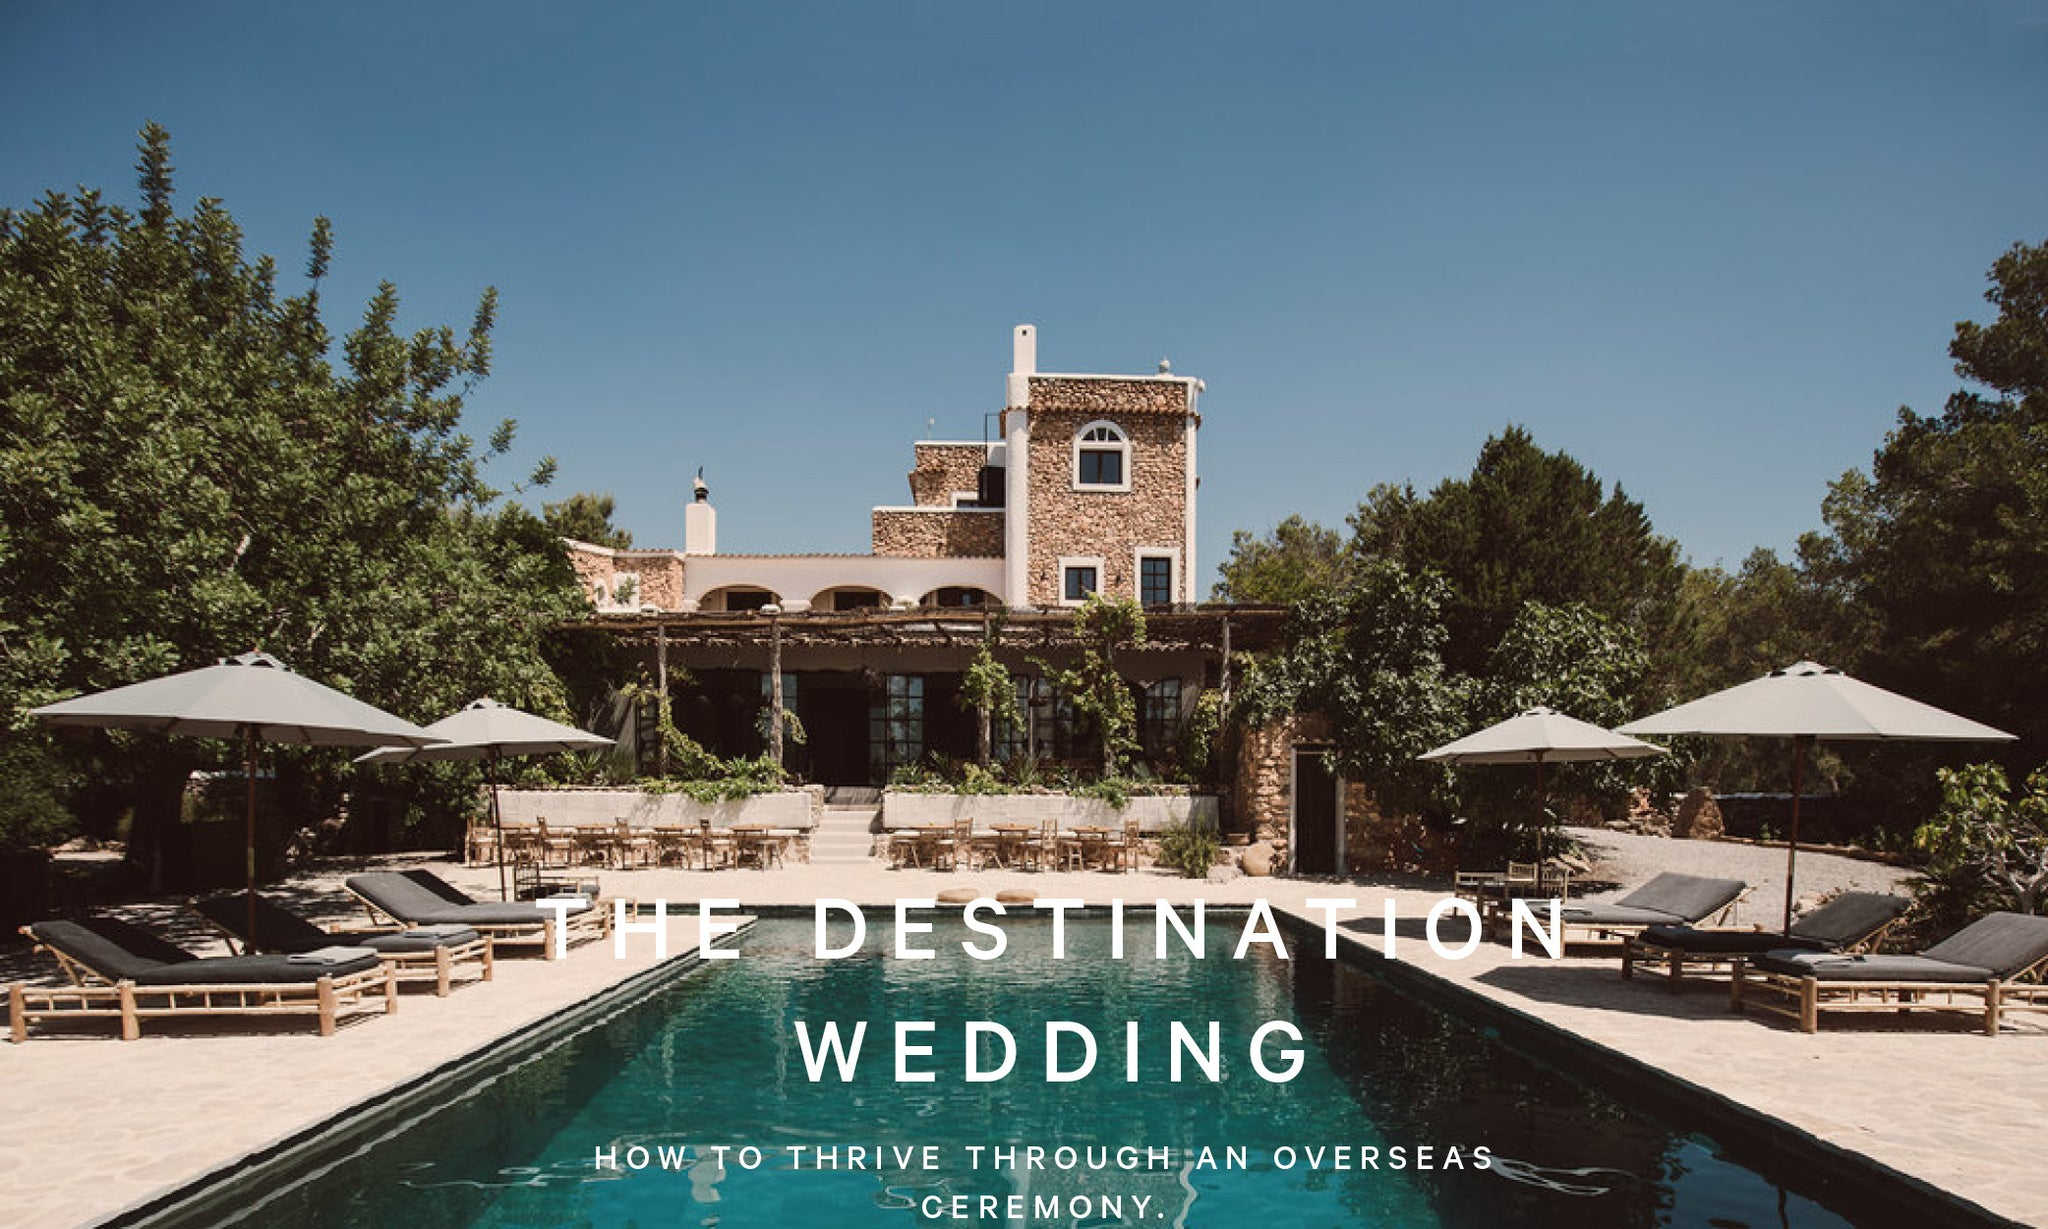 ASCENO TRAVELS: THE DESTINATION WEDDING